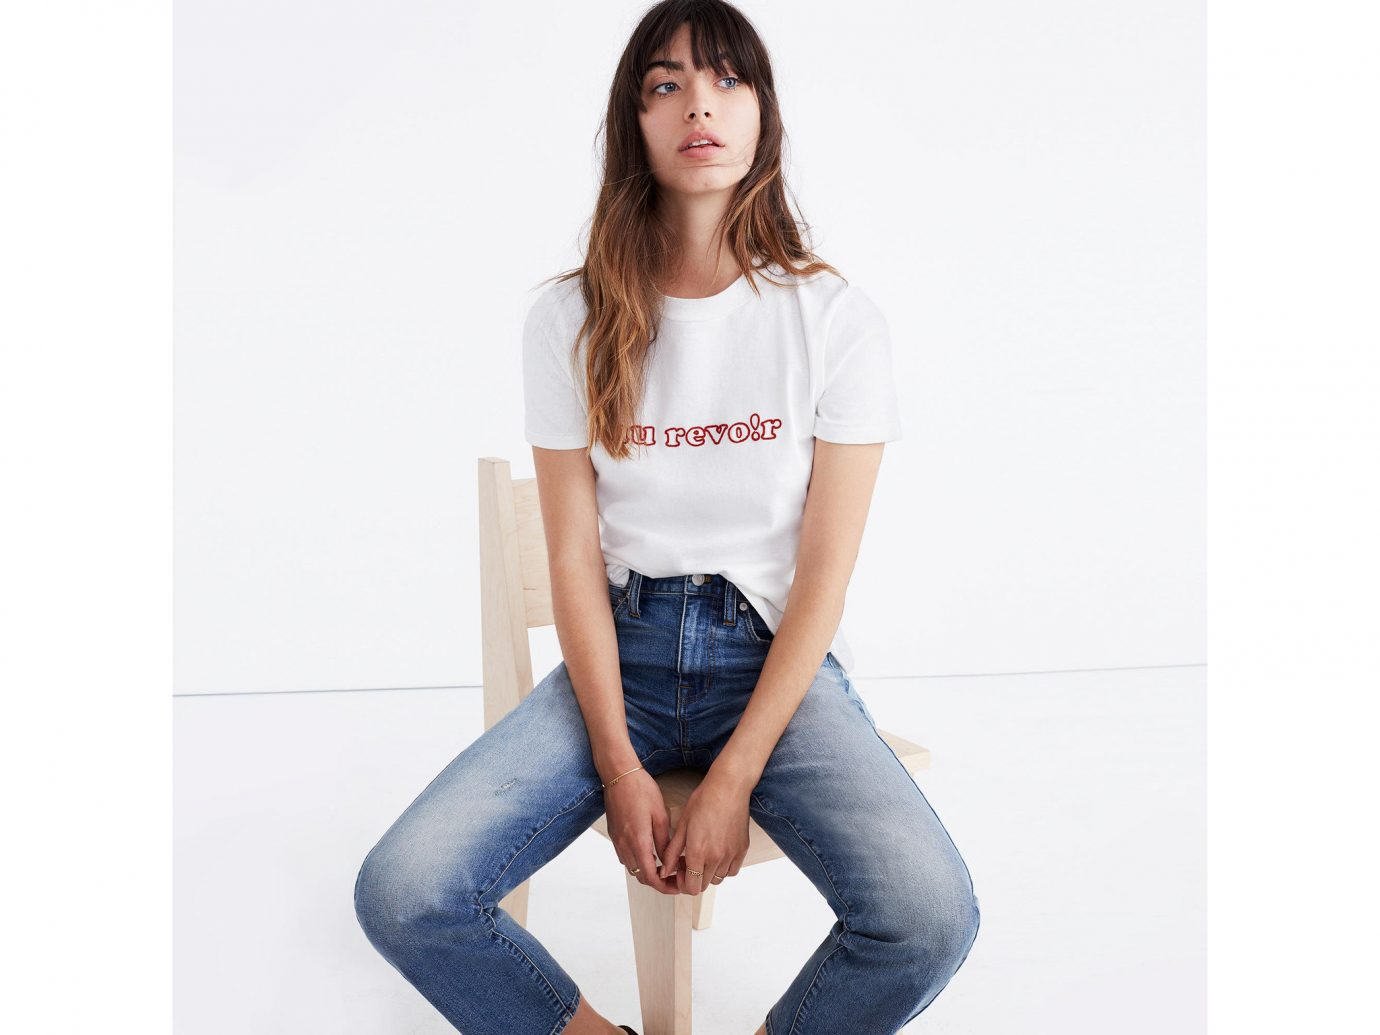 Style + Design person clothing jeans shoulder young denim fashion model joint waist neck t shirt trousers sleeve abdomen posing product trouser